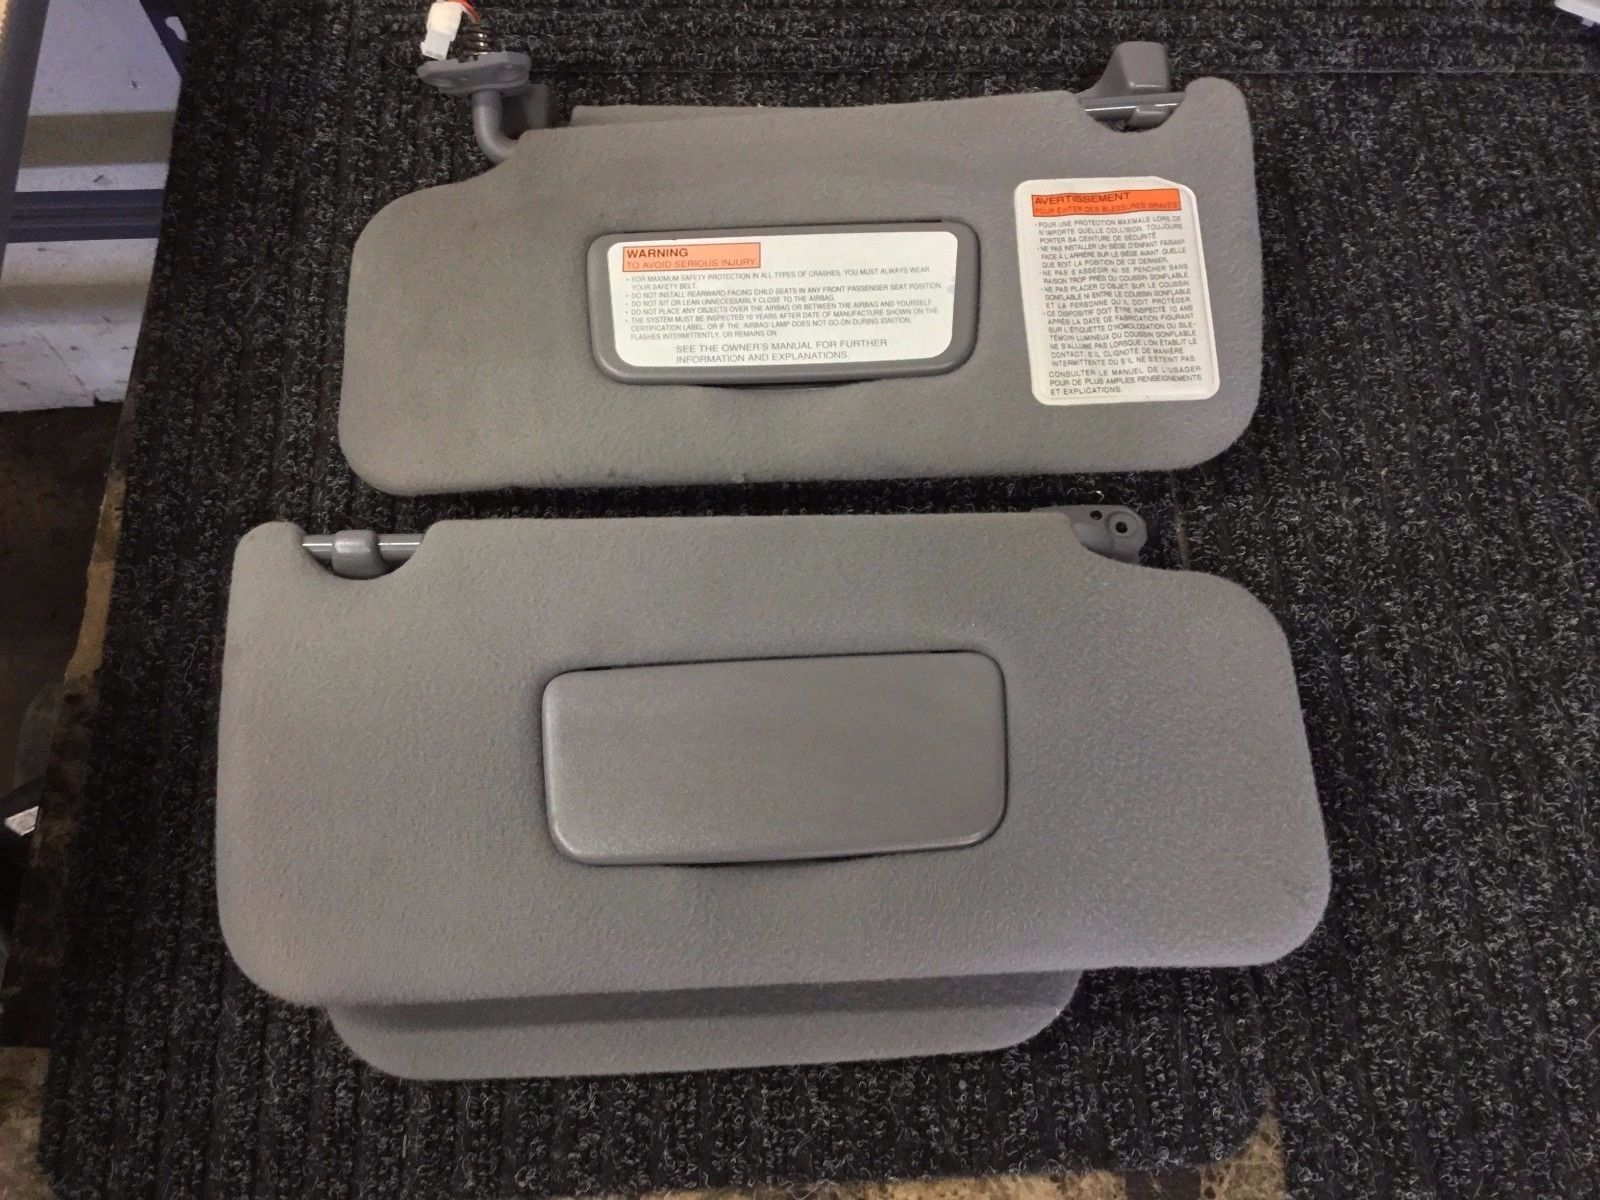 97 98 99 00 01 02 03 04 INFINITI QX4 pathfinder SUN VISORS SET GRAY HOMELINK  FACTORY GENUINE STOCK ORIGINAL OEM OE